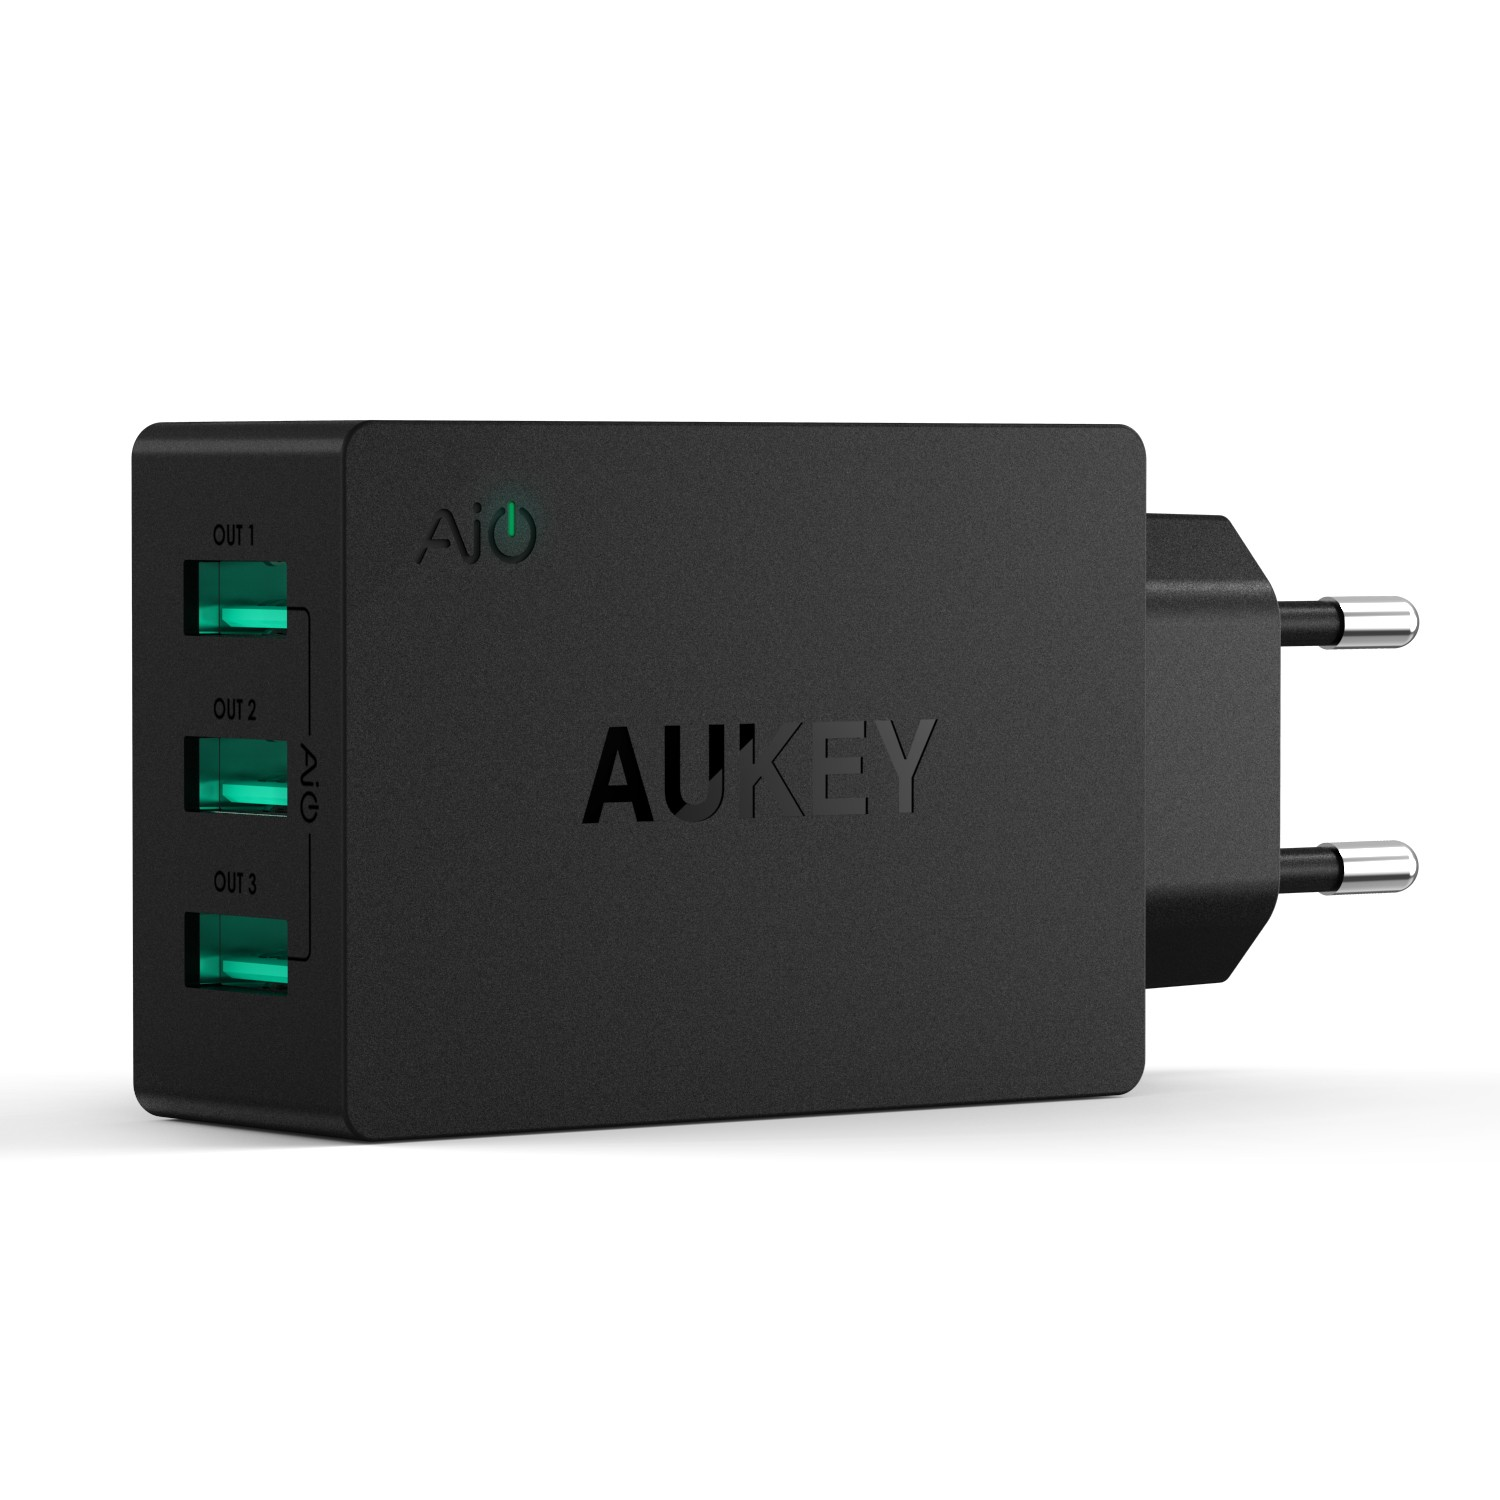 AUKEY PA-U35 chargeur mural AiPower 3 ports